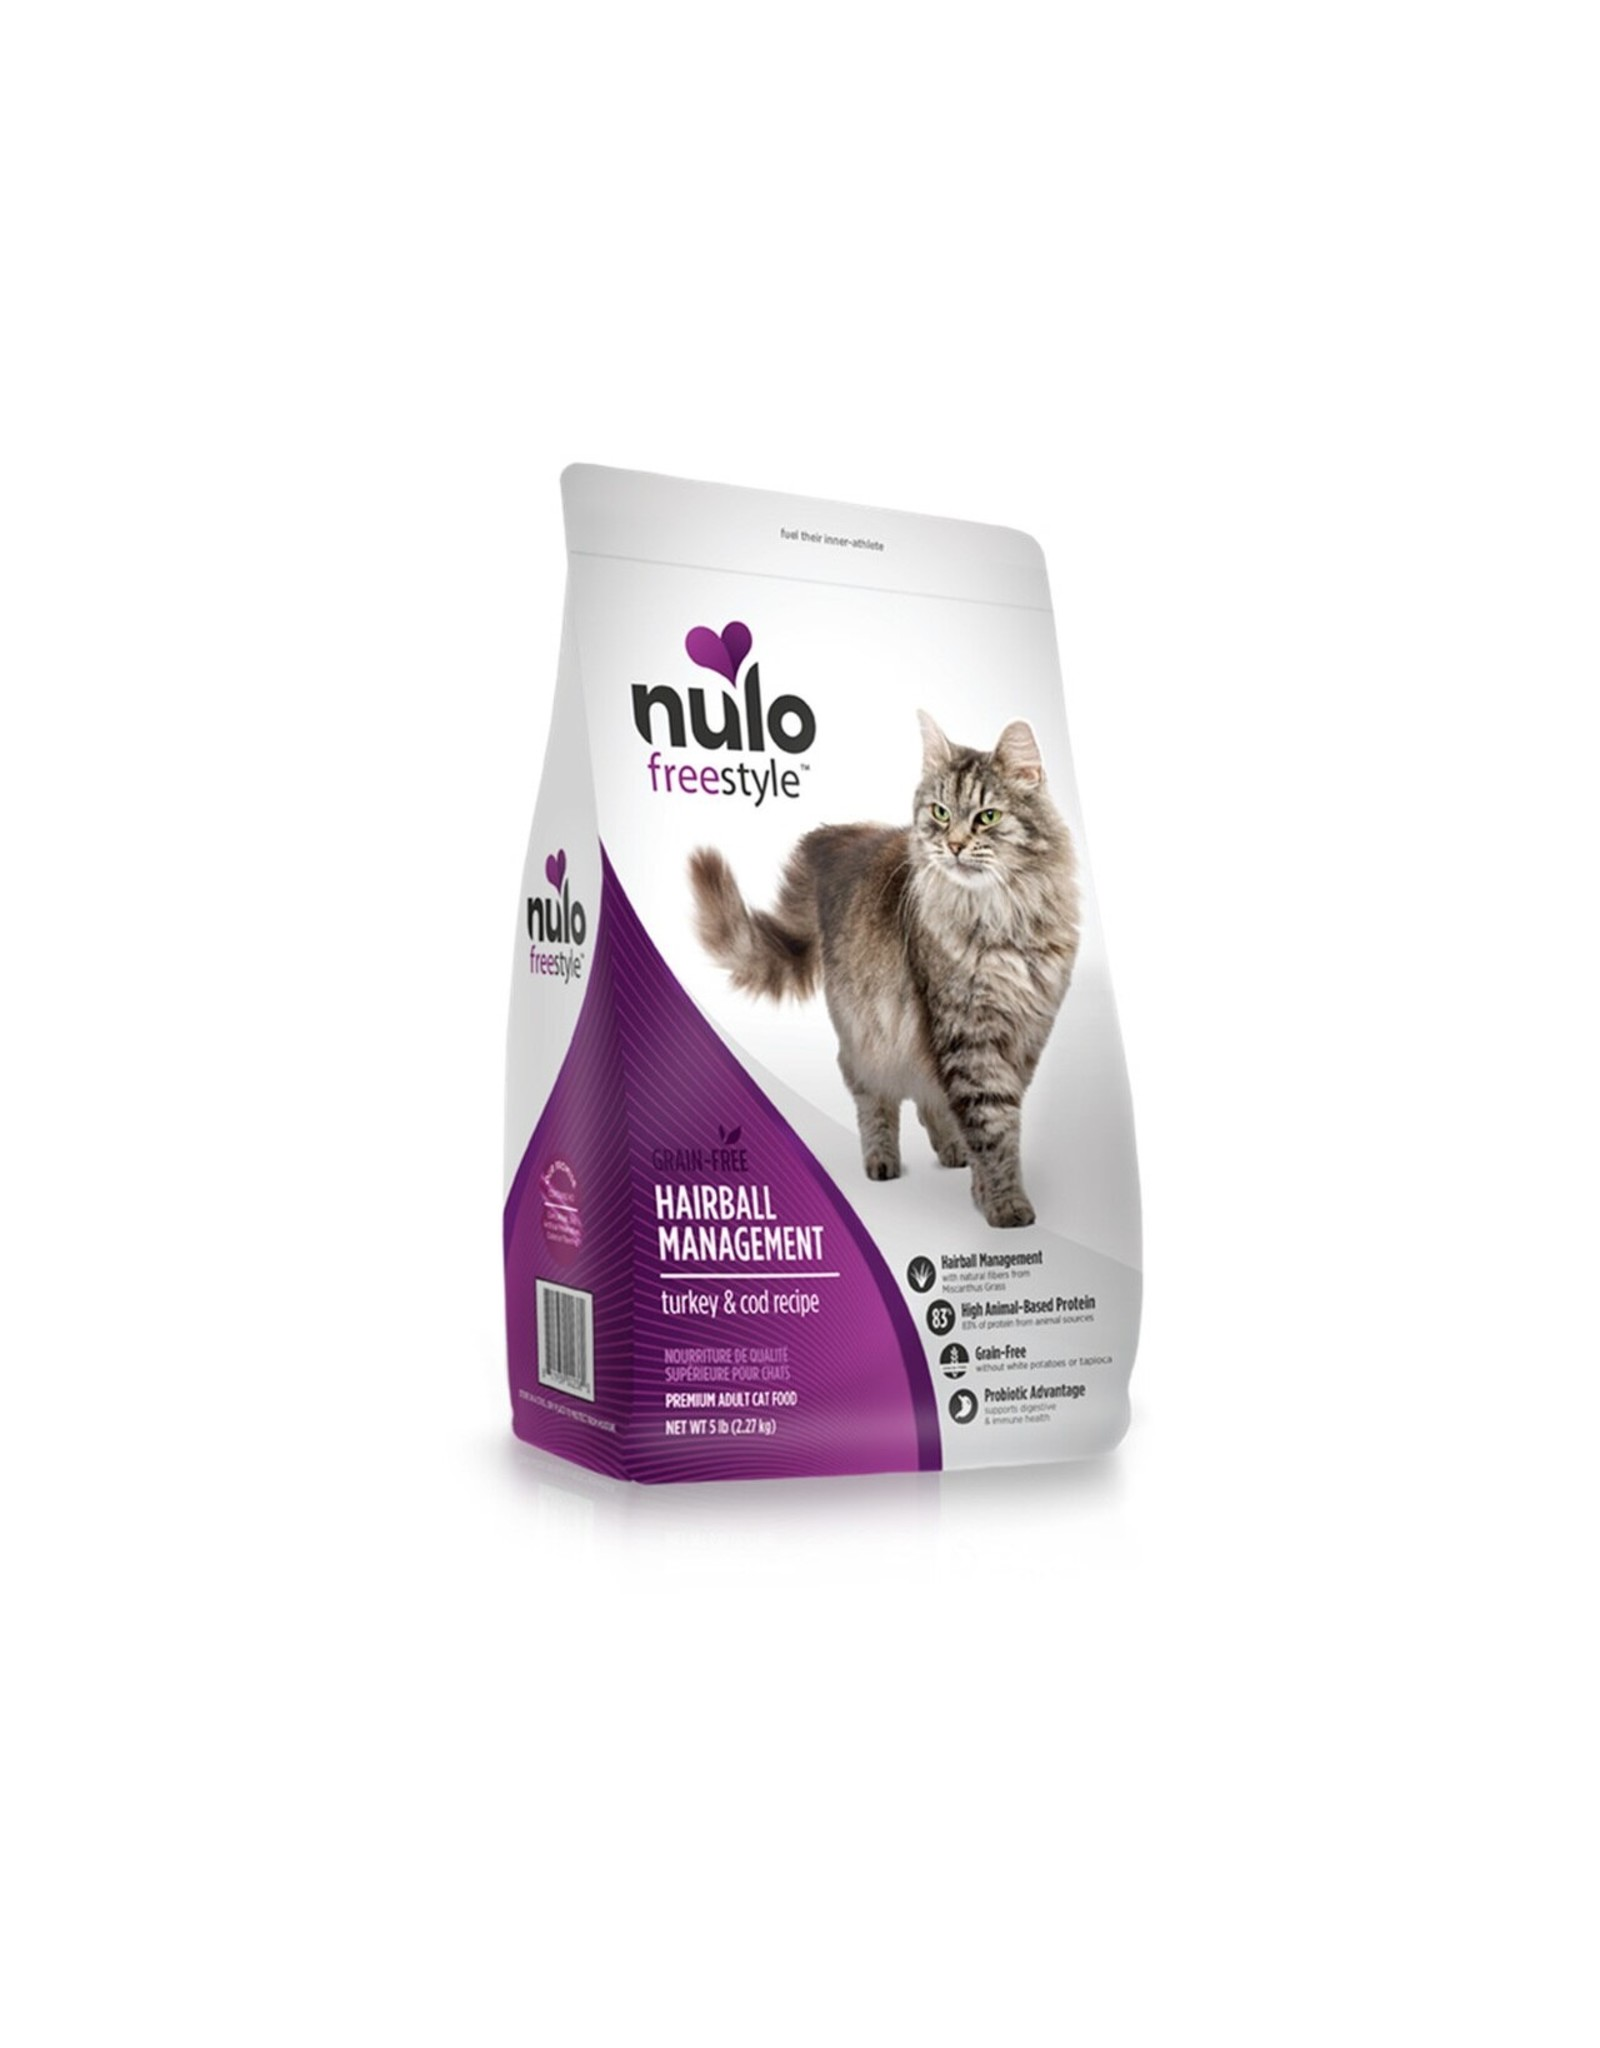 Nulo Nulo Dry Cat Food Freestyle Hairball Management Turkey & Cod Recipe Grain Free